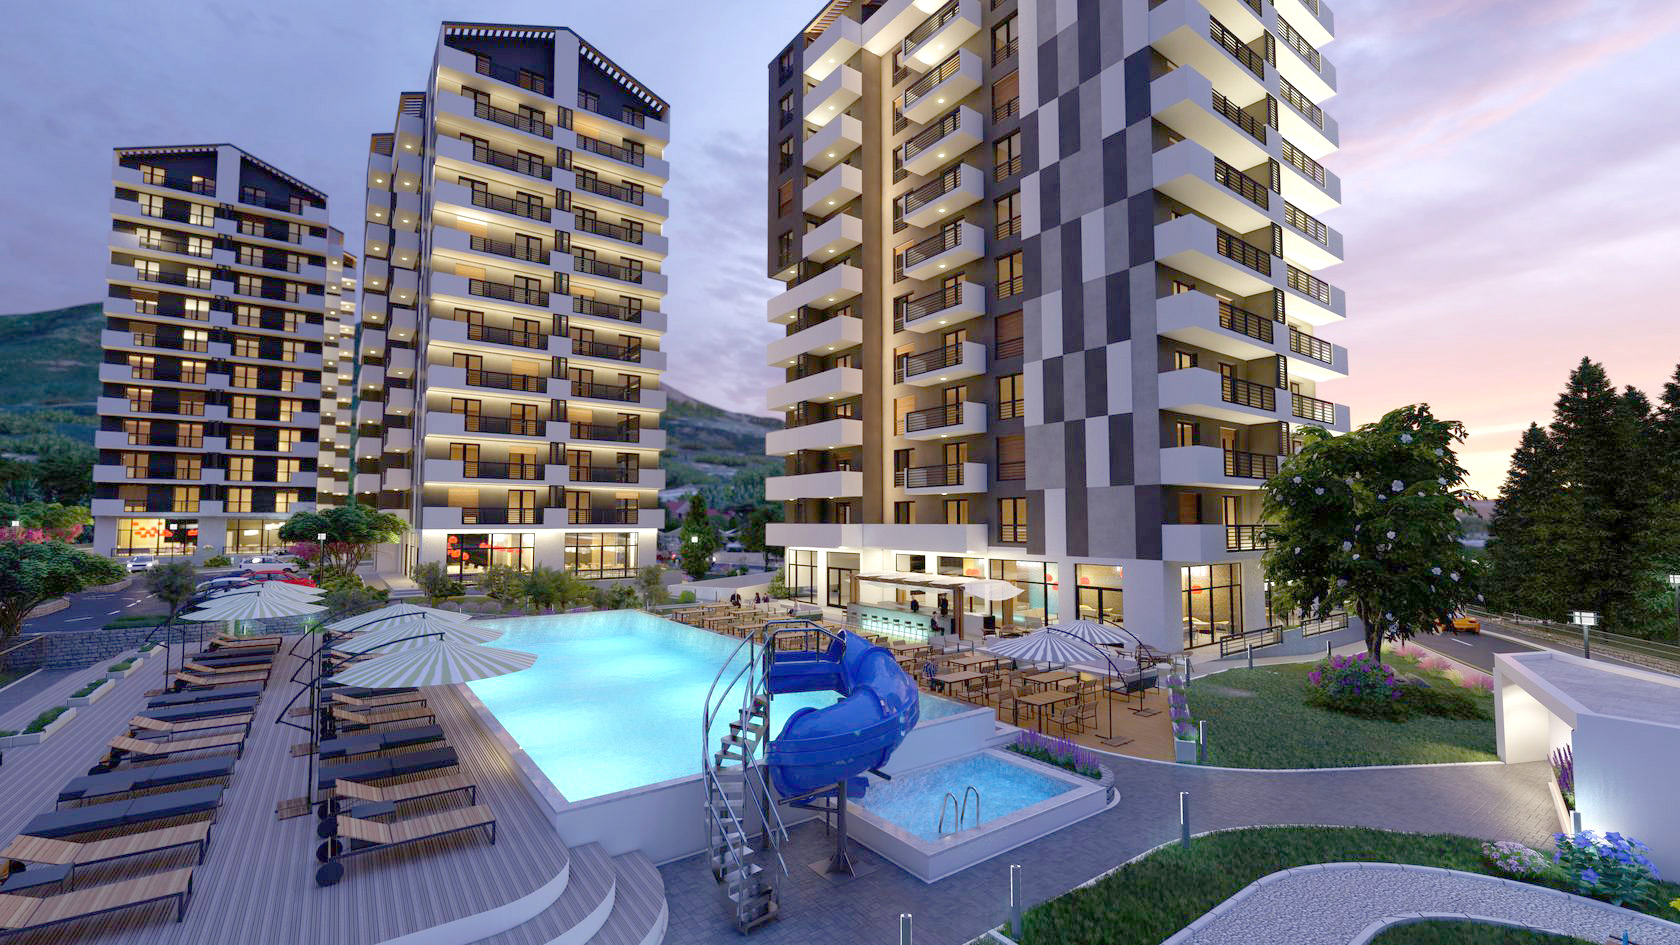 Bar, Bjelisi – luxury apartments in a complex with pool and sea view